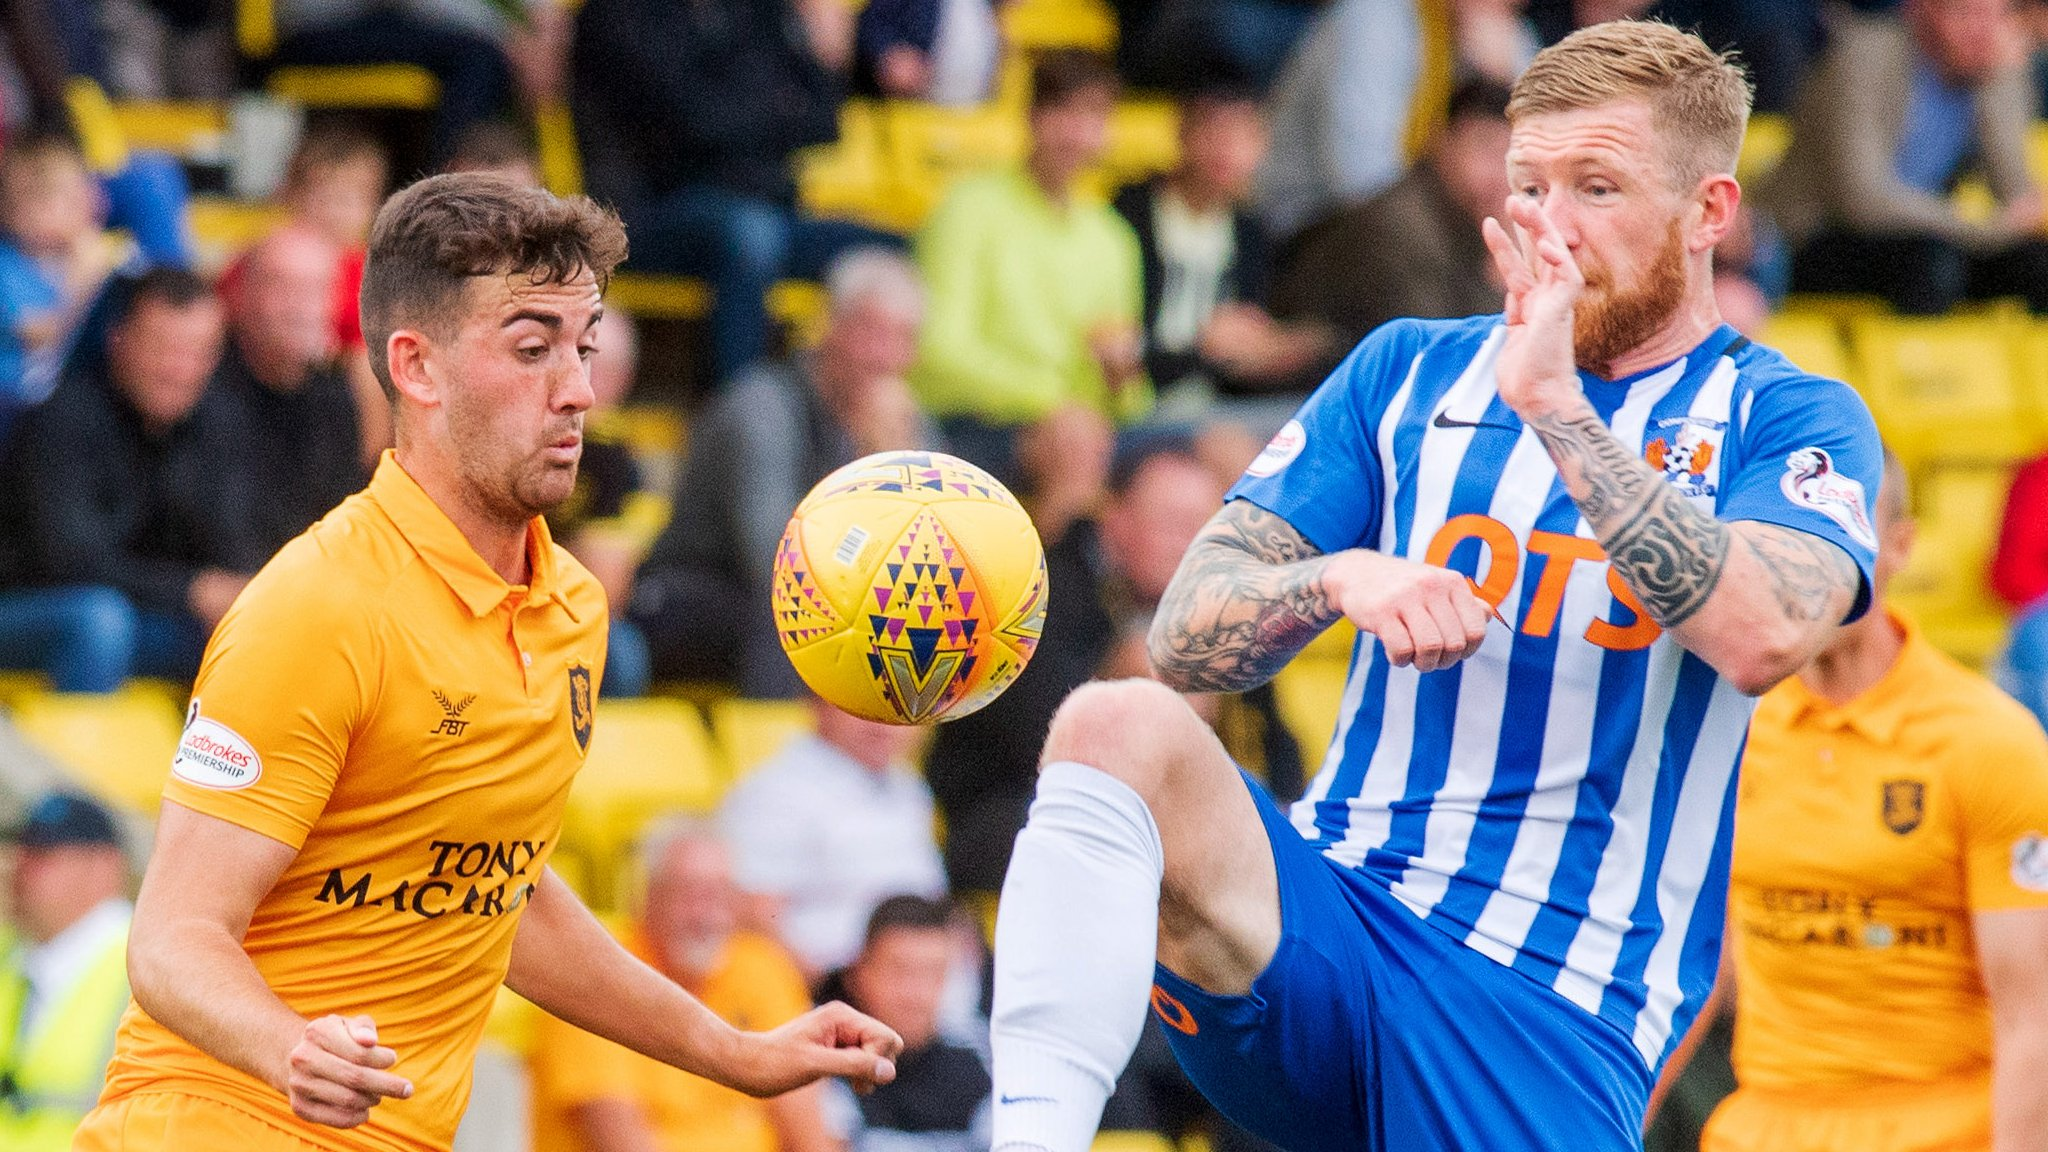 Livingston hold Kilmarnock to 0-0 draw and secure first Premiership point